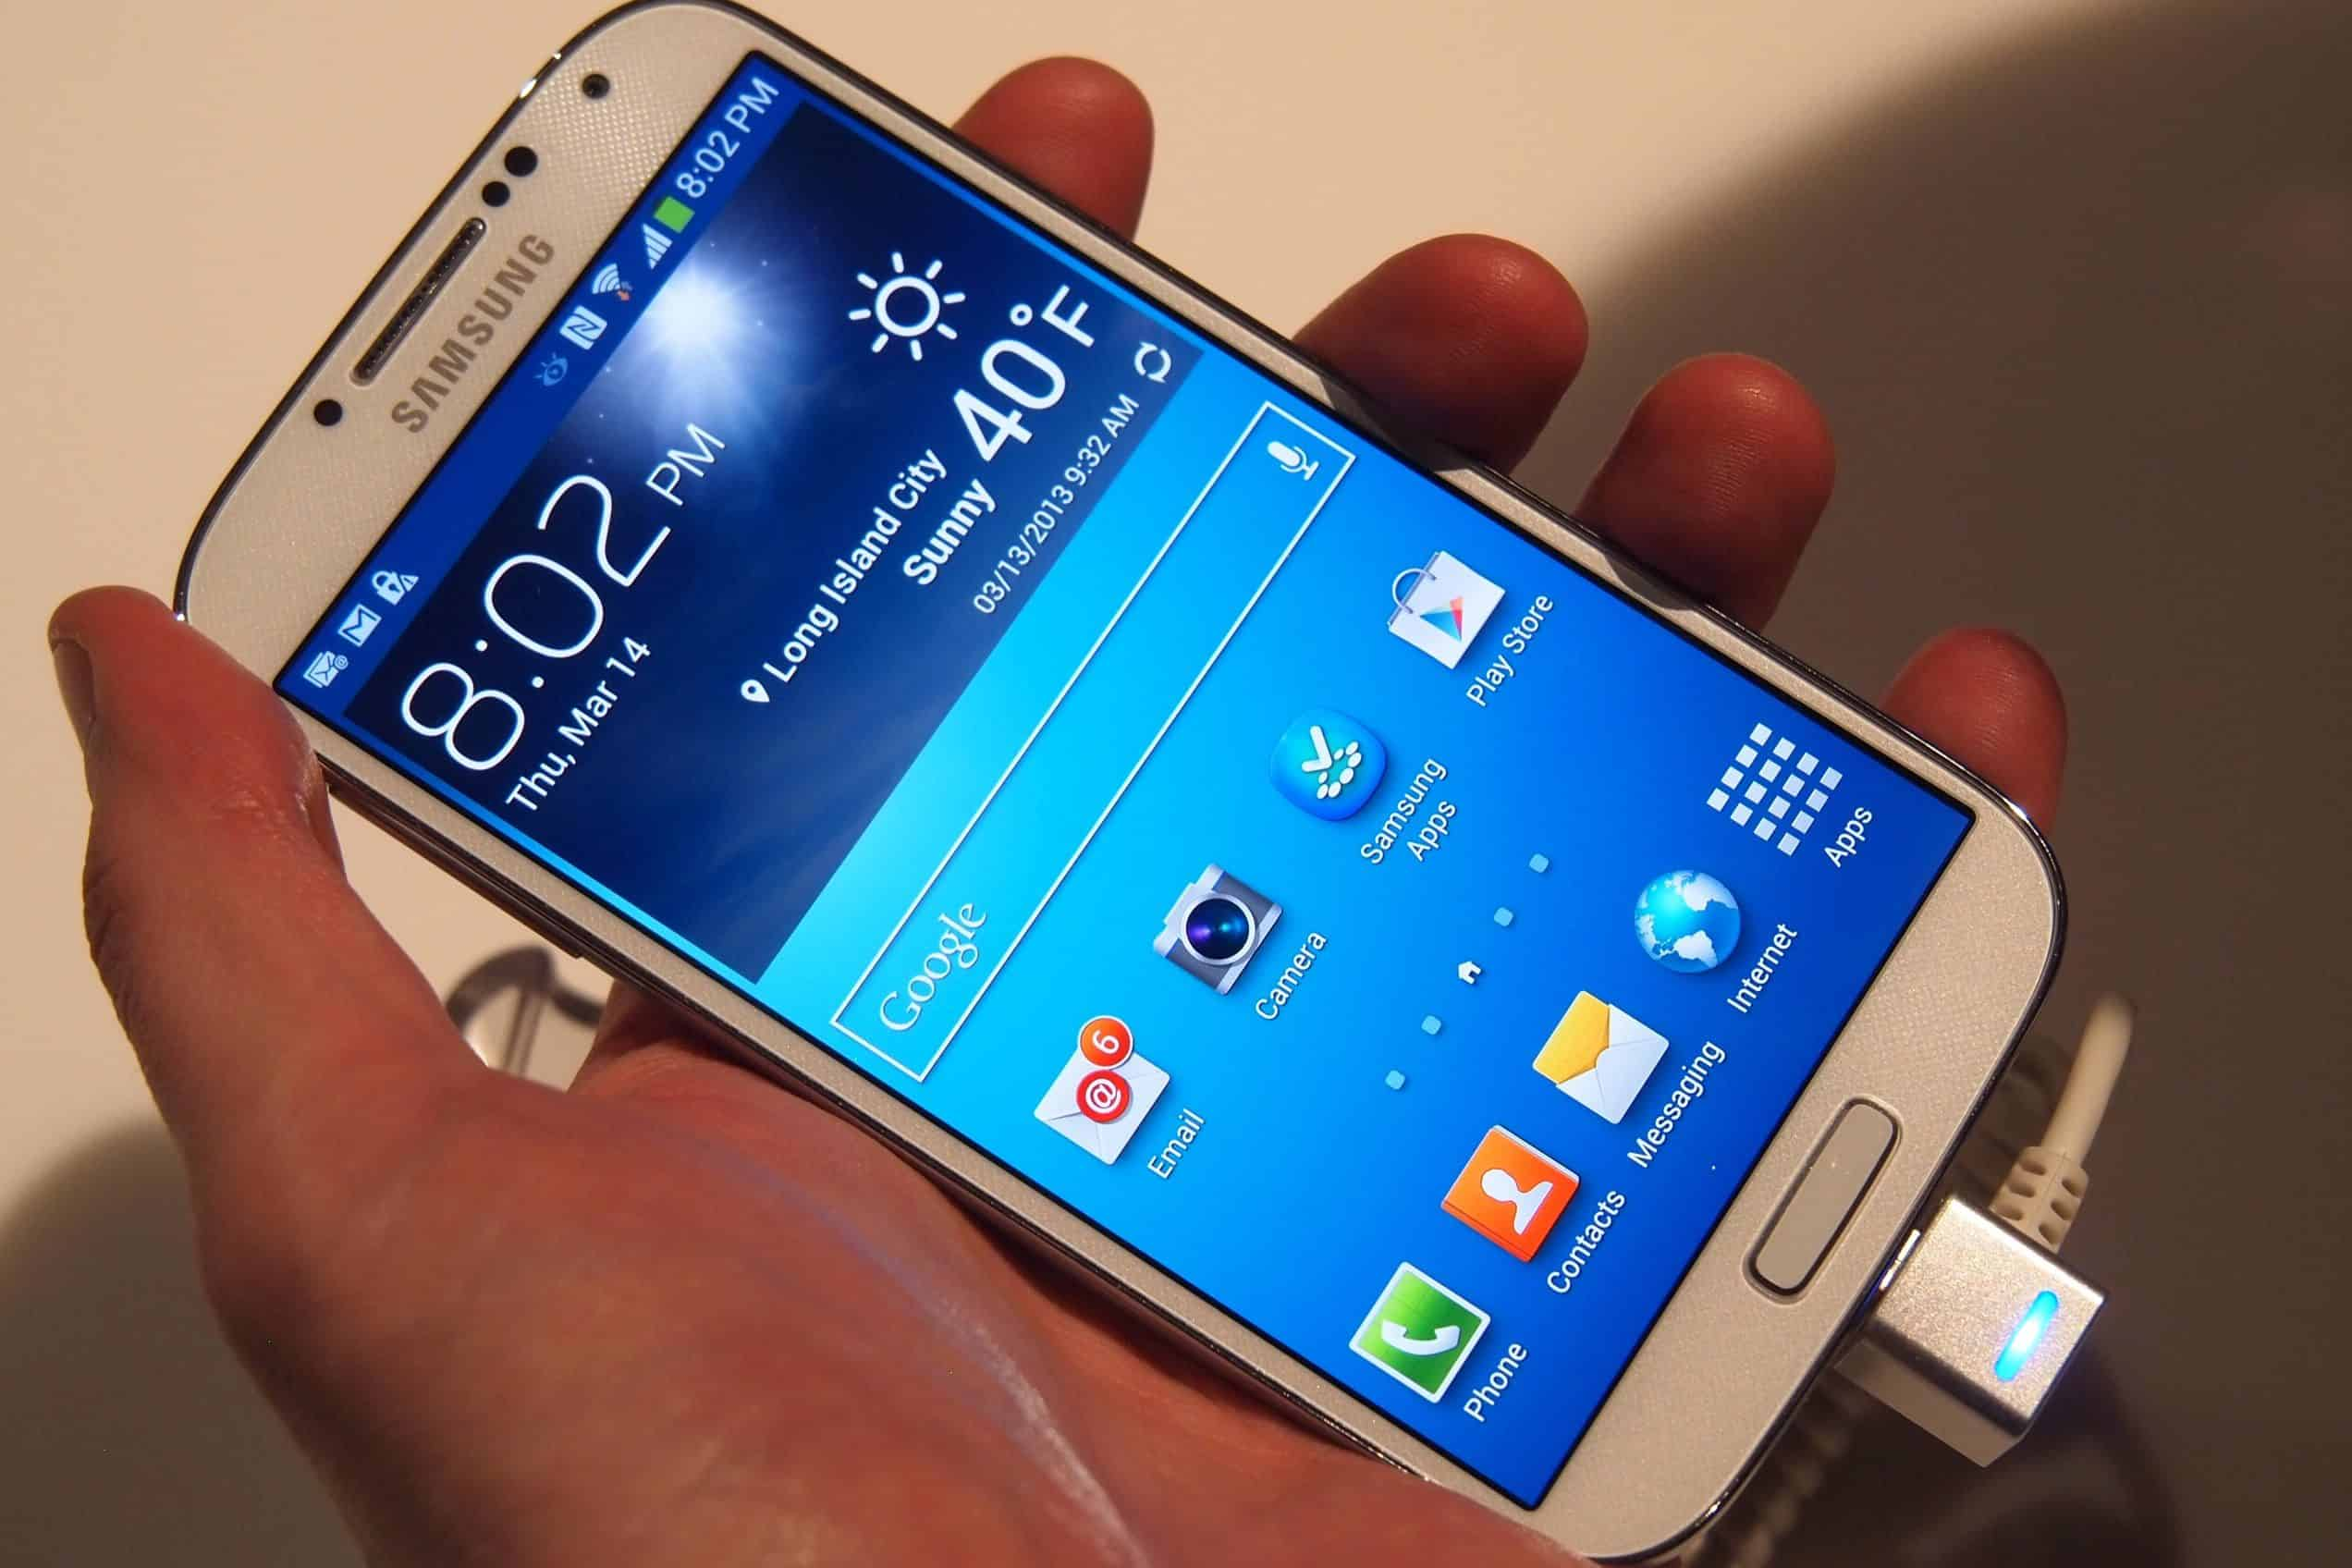 Samsung Galaxy s4 Unlocked! • How to Unlock In Less Than 5